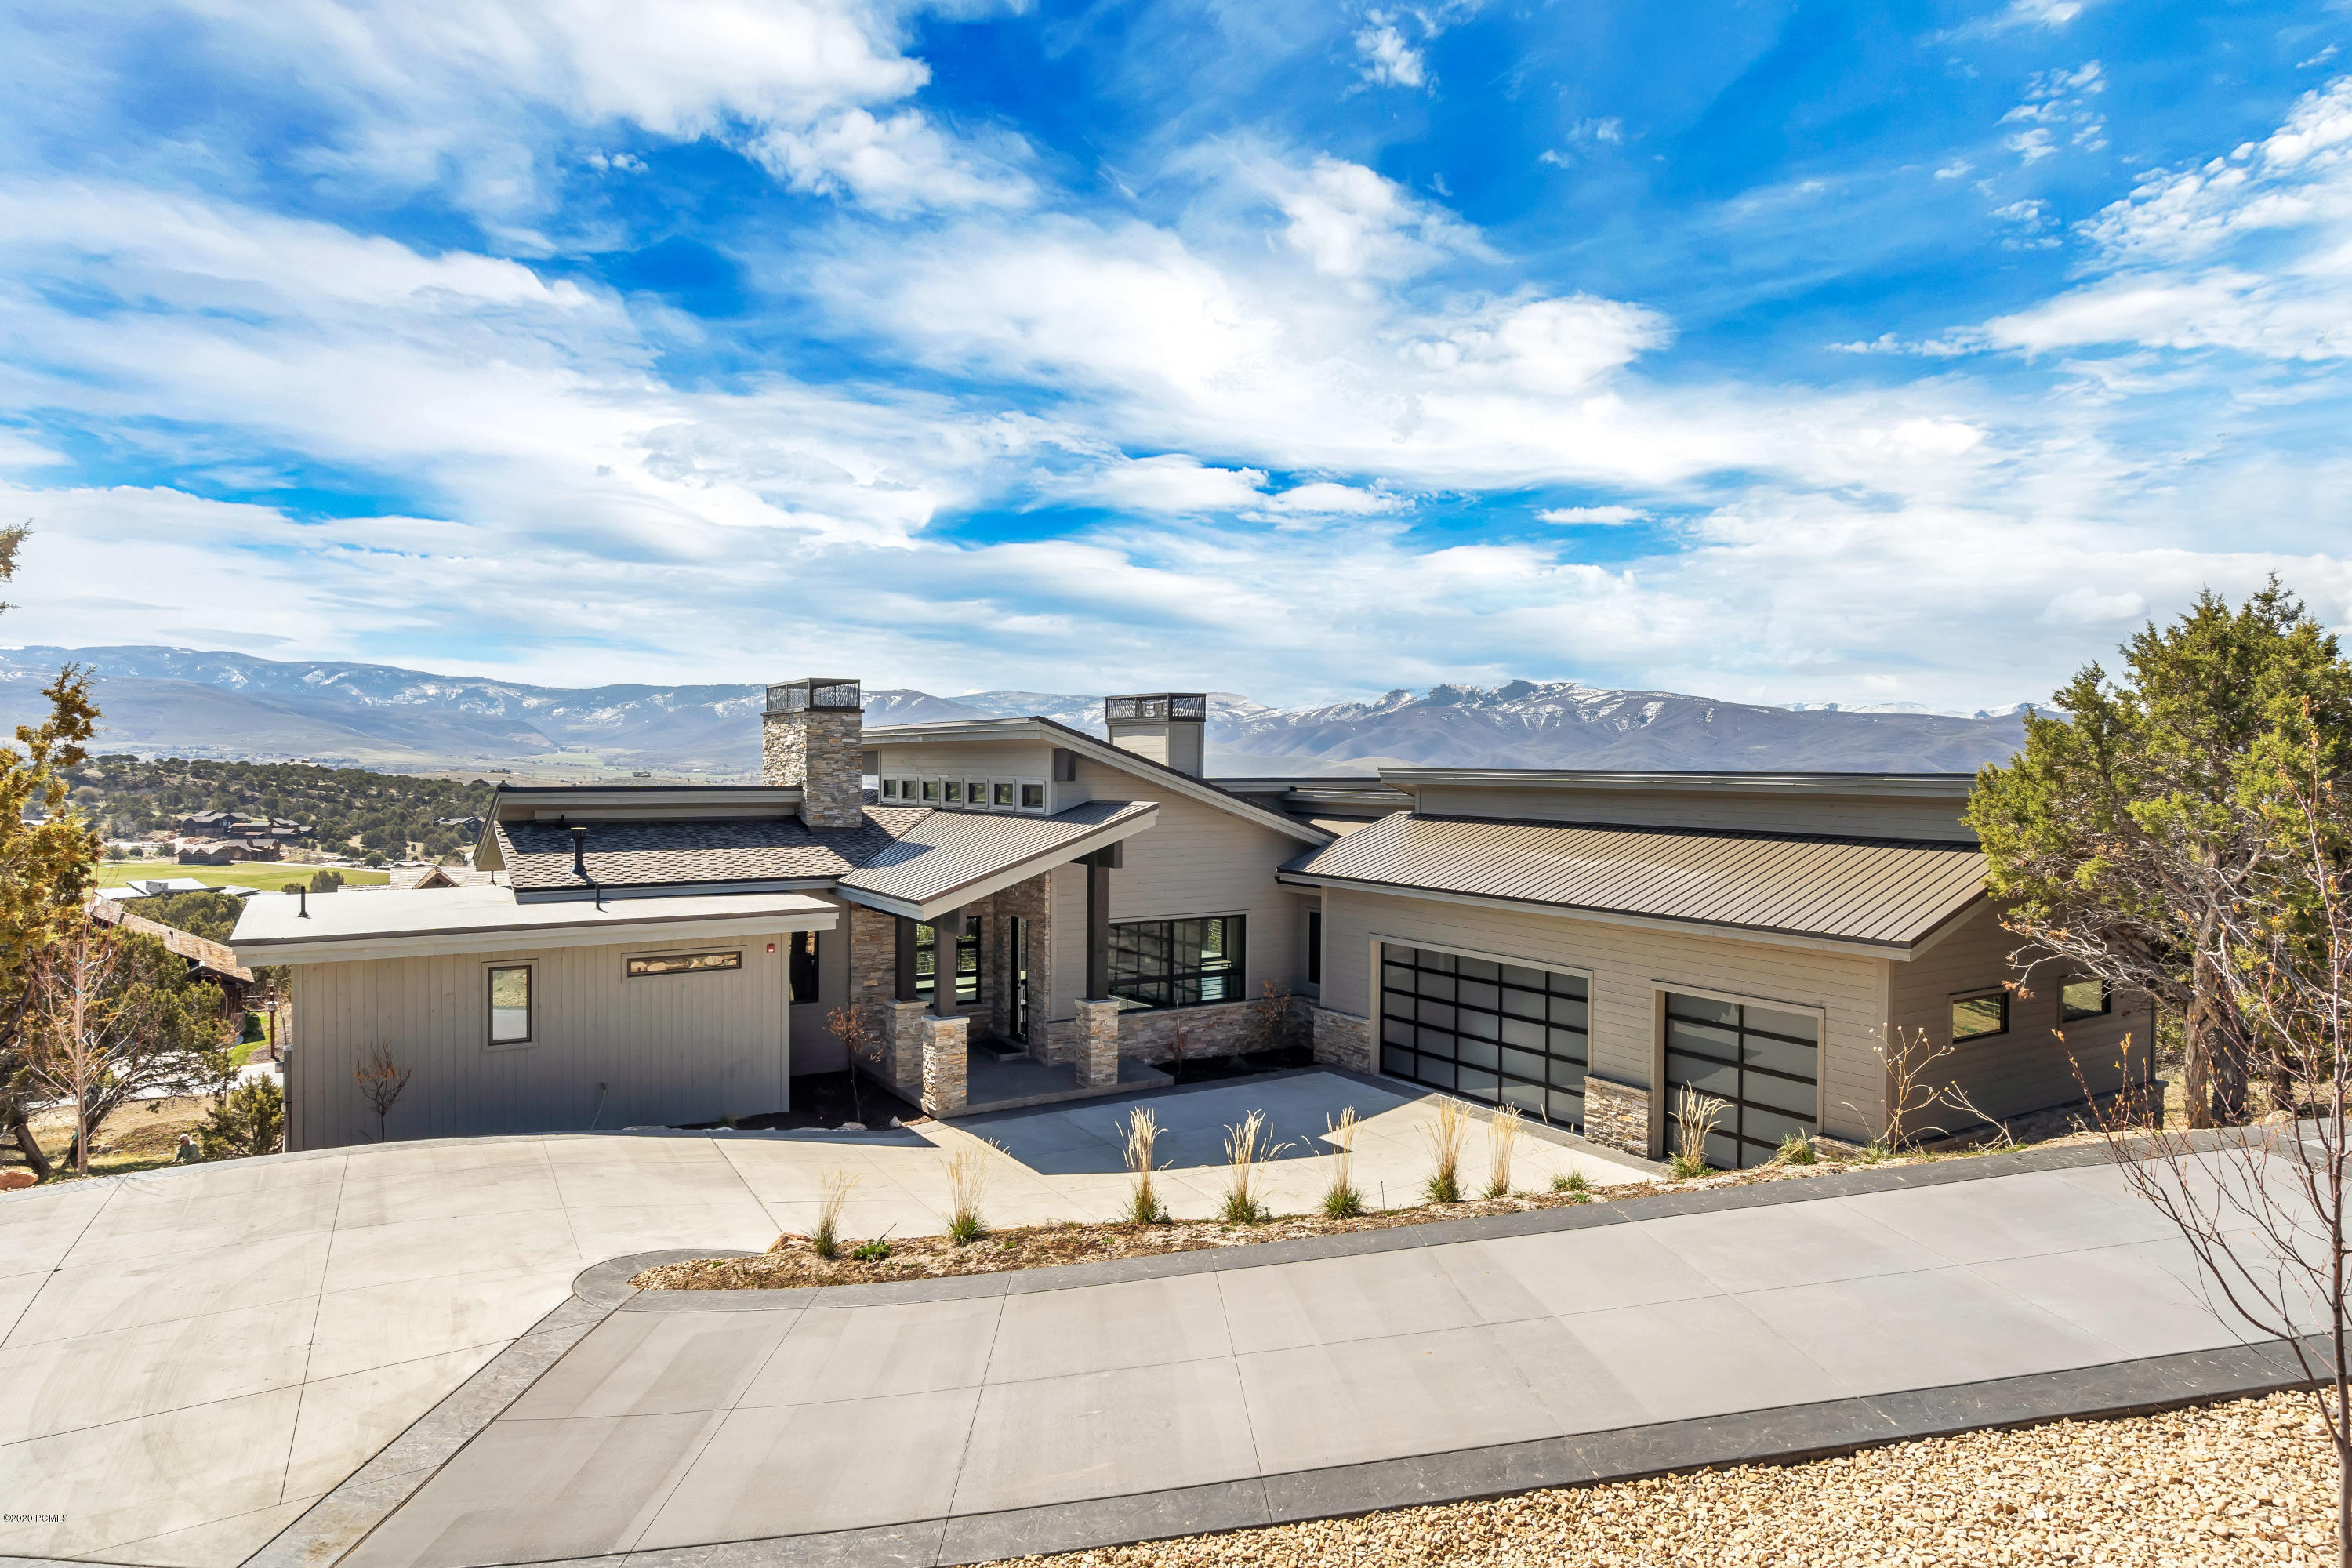 748 Explorer Peak Drive, Heber City, Utah 84032, 4 Bedrooms Bedrooms, ,5 BathroomsBathrooms,Single Family,For Sale,Explorer Peak,12000255